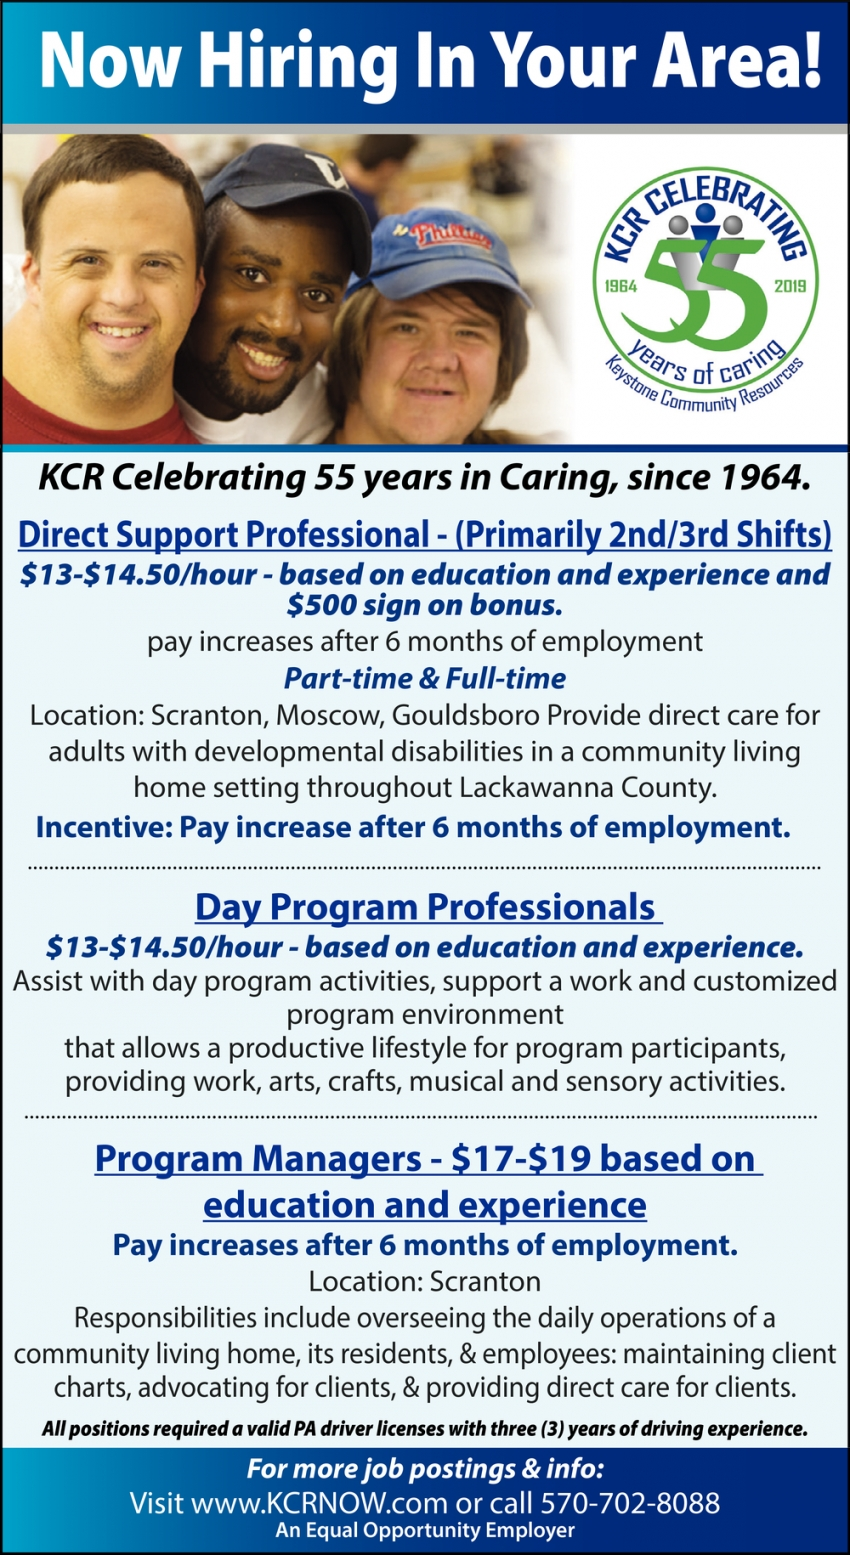 Direct Support Professional - Day Program Professionals - Program Managers